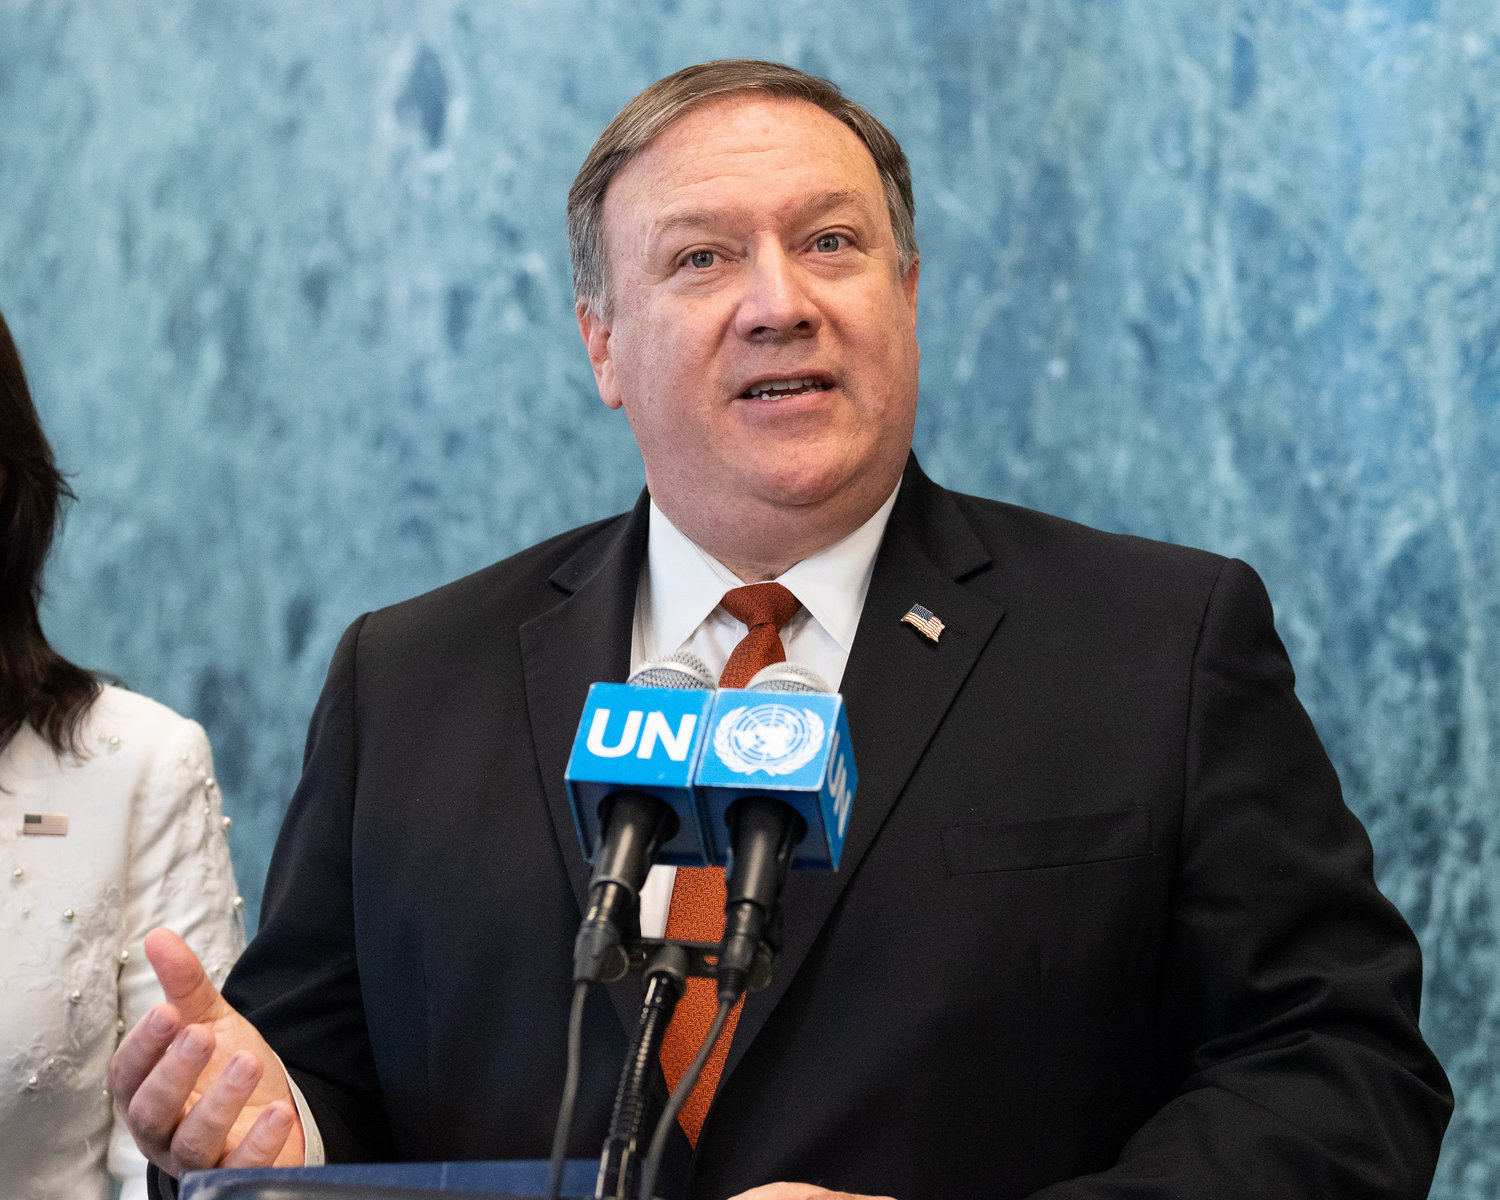 U.S. Secretary of State Mike Pompeo at a news conference at the United Nations in New York on July 20, 2018.